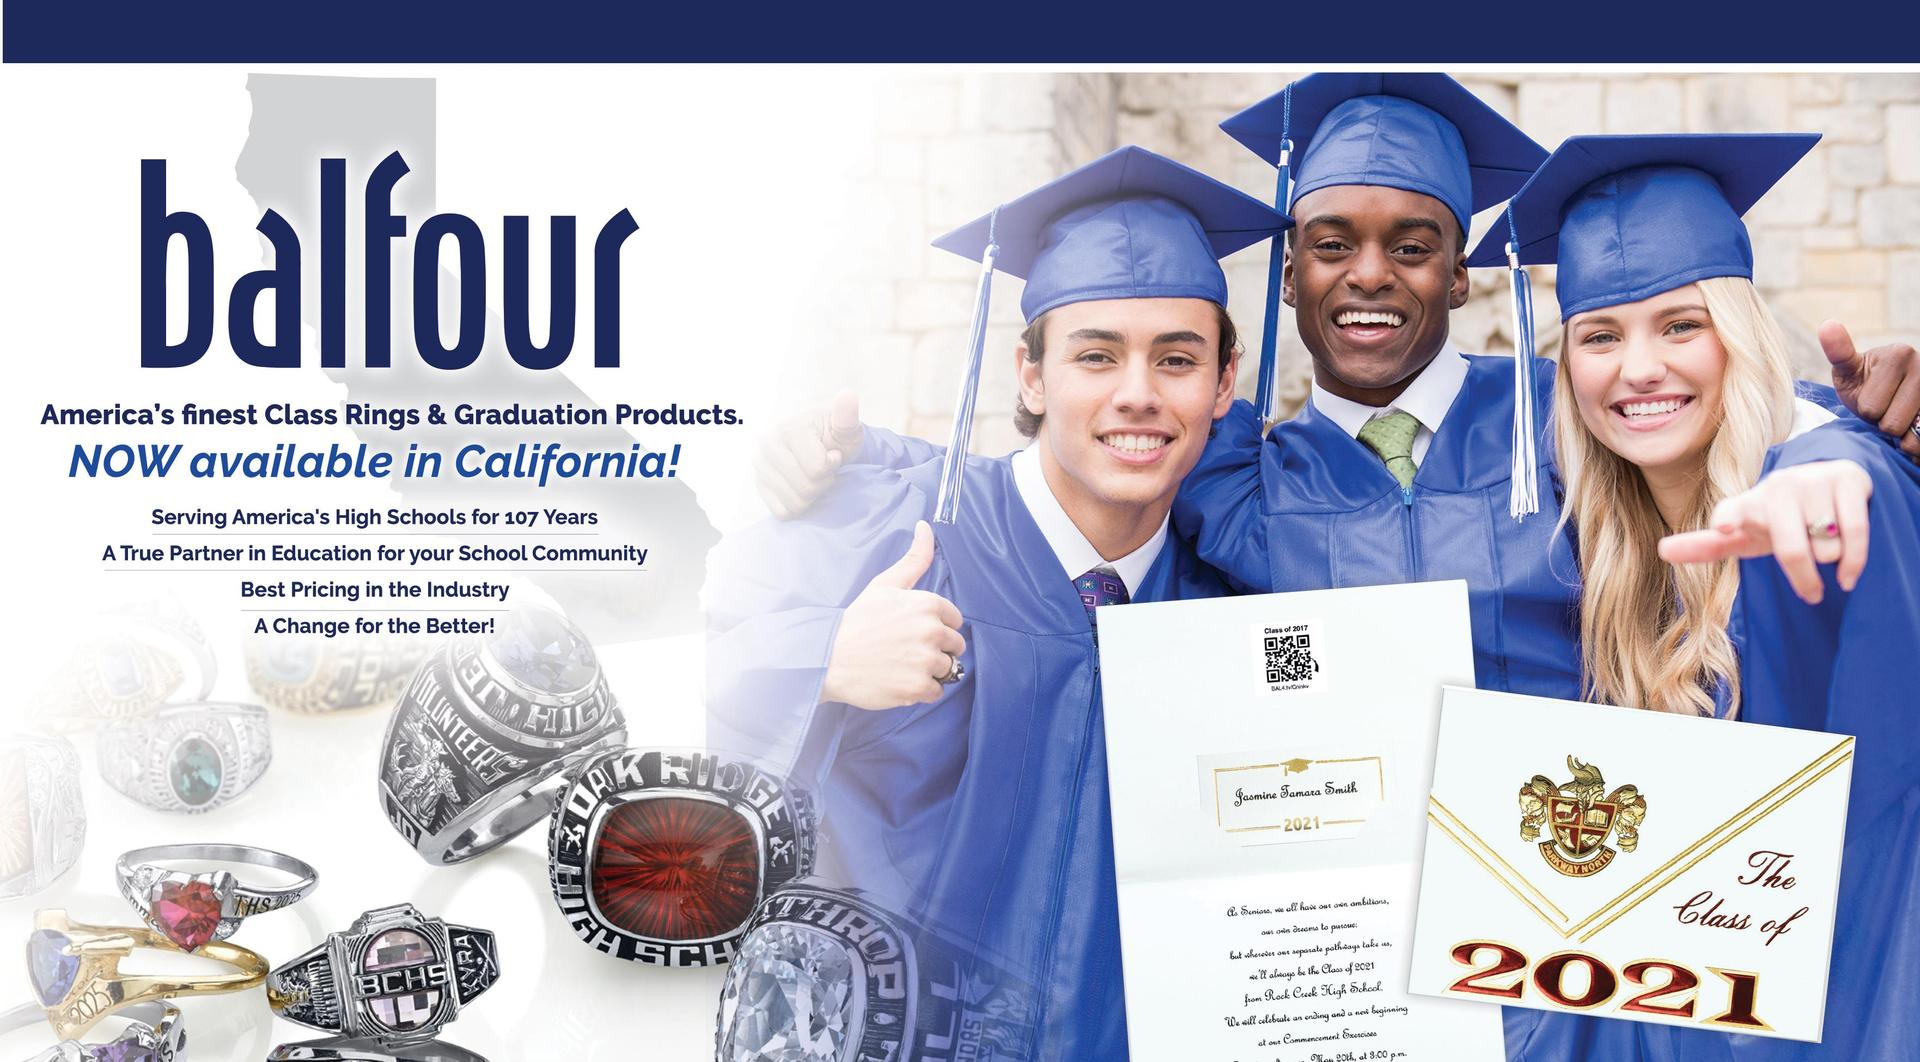 Balfour America's finest Class Ring & Graduation Products.